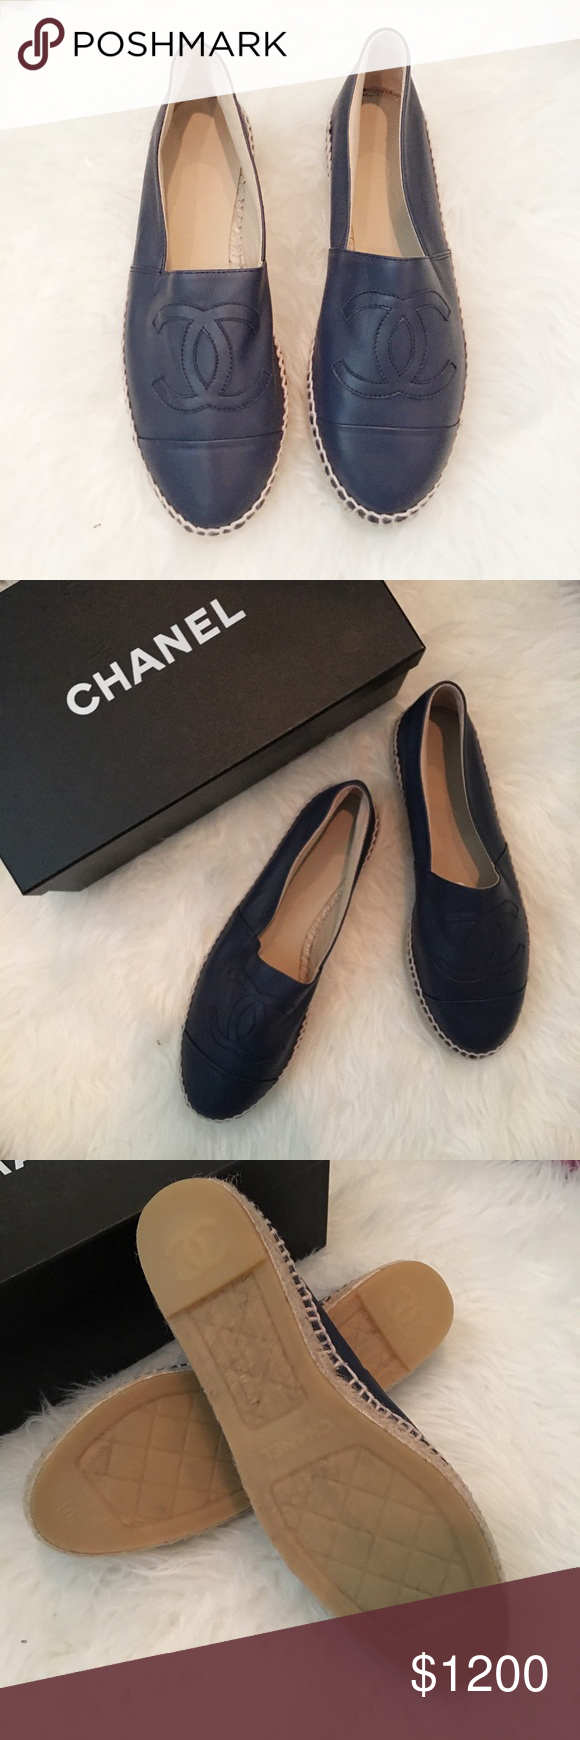 Chanel Lambskin Espadrilles Authentic. Brand new. Final sale. Pls ask questions before purchasing. CHANEL Shoes